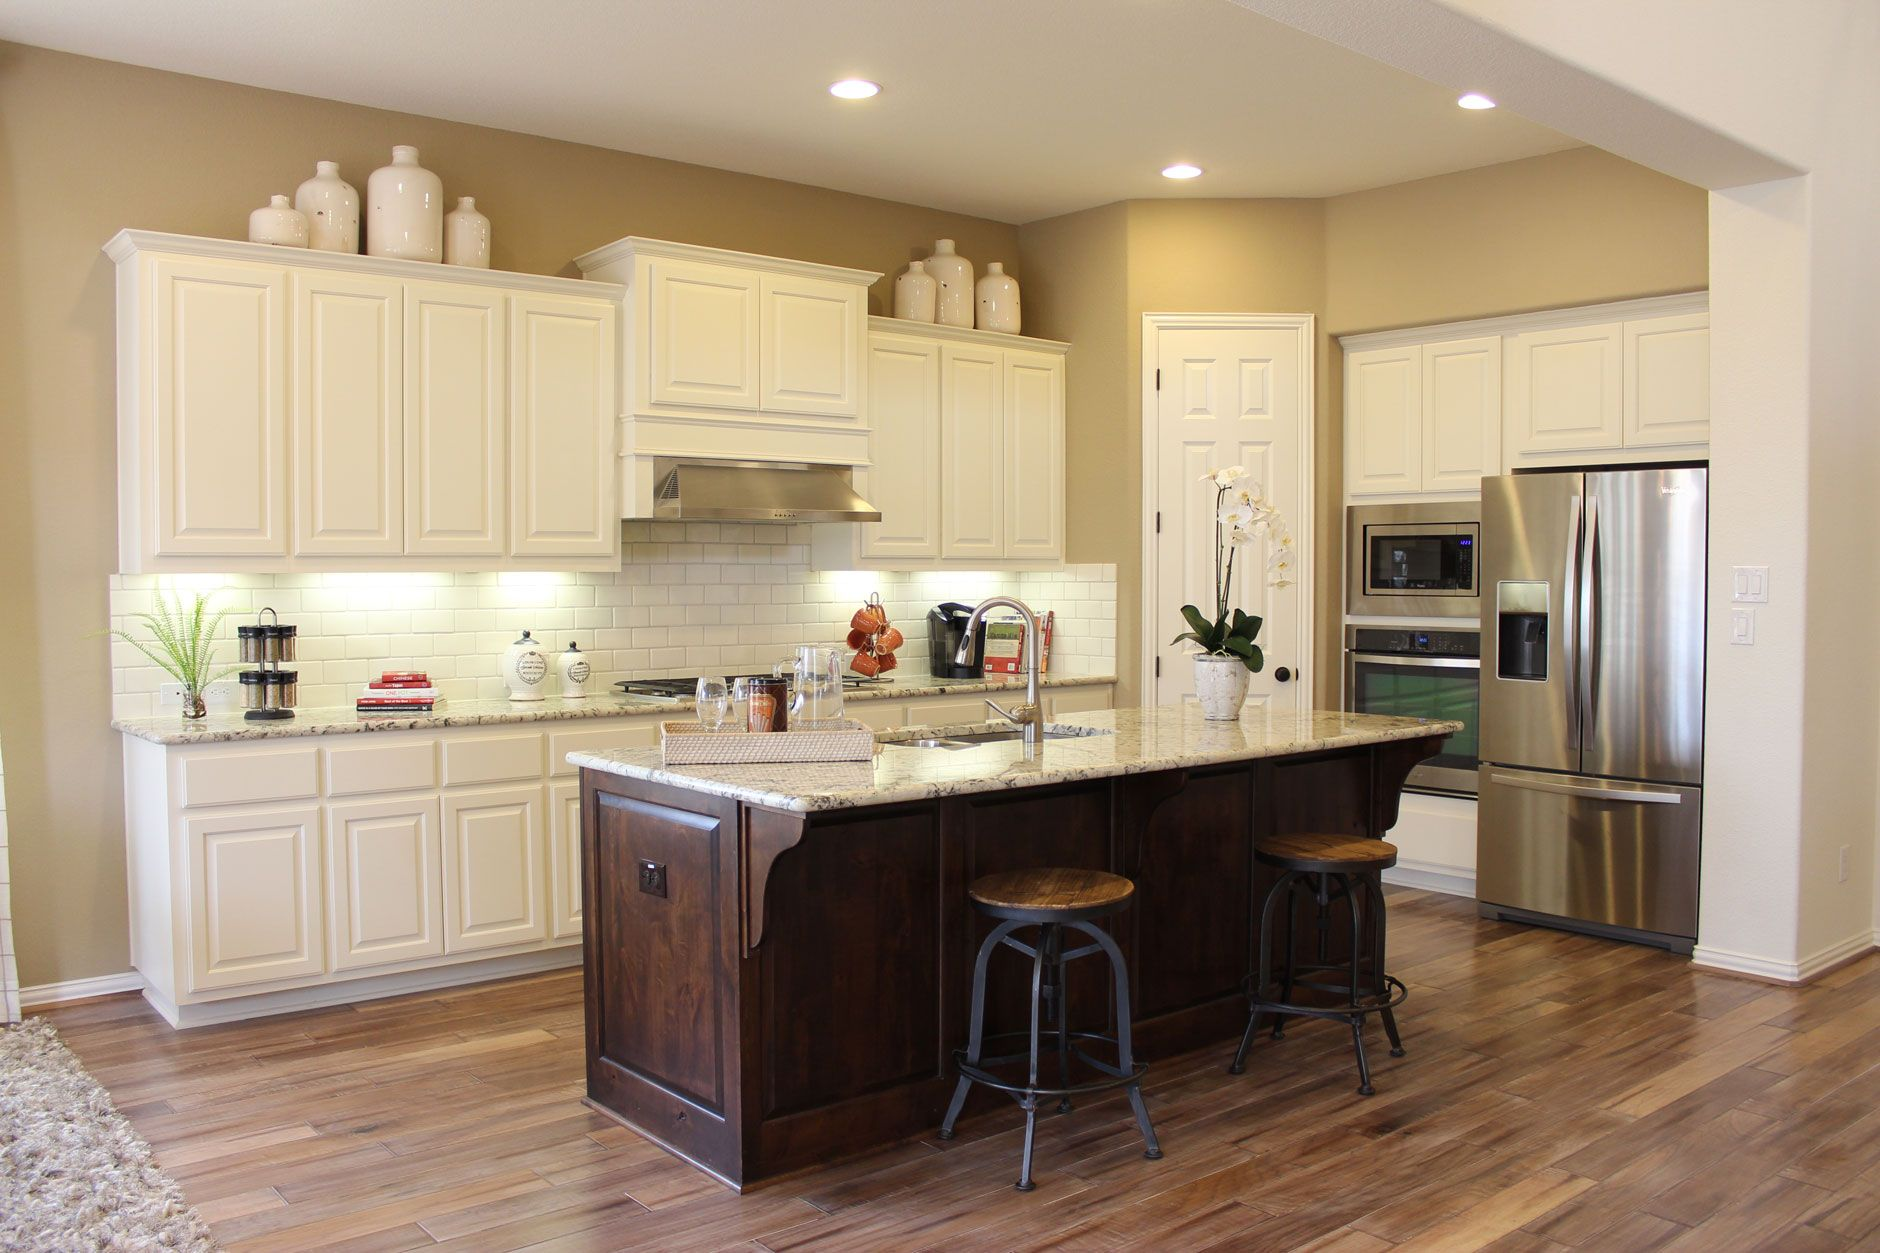 Wood Kitchen Cabinets With Painted Island White Painted Kitchen Cabinets With Cabinet Doors By